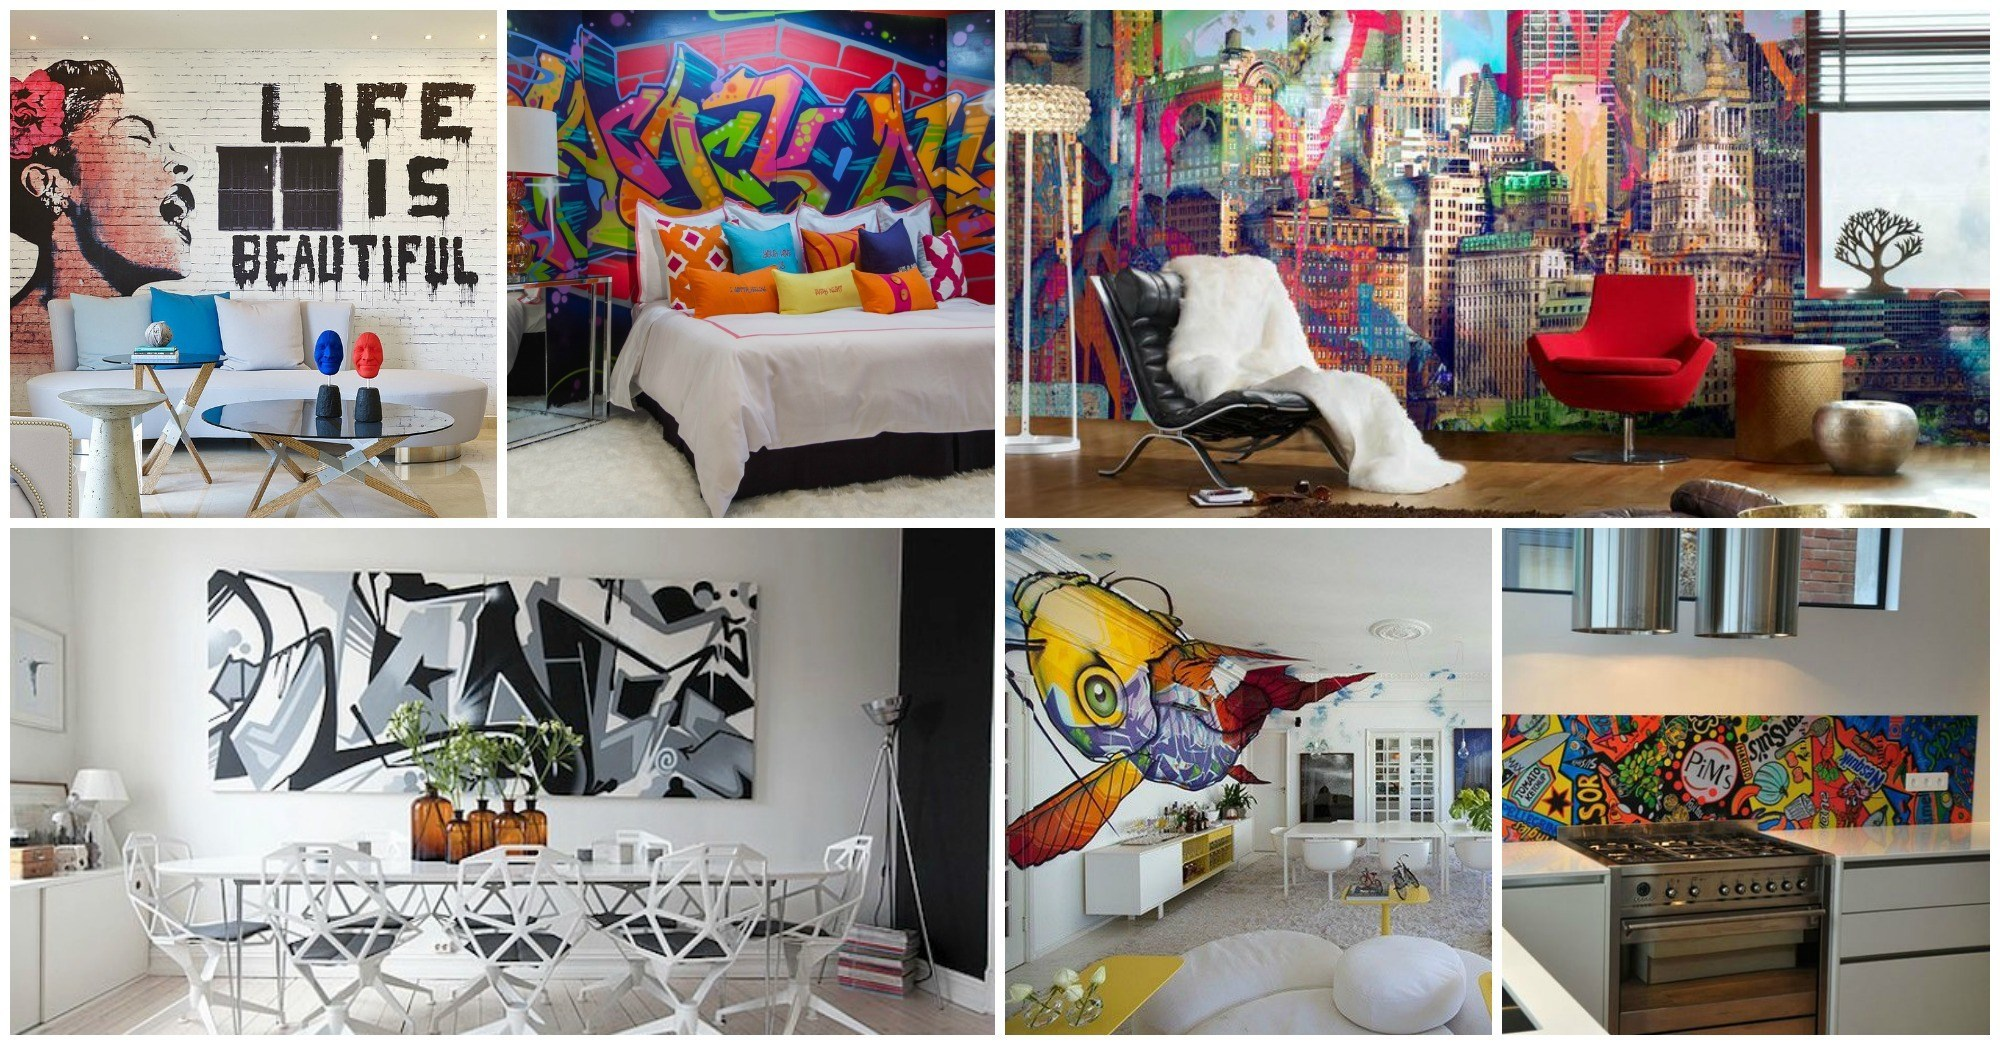 Awesome Graffiti Interiors That Will Blow Your Mind